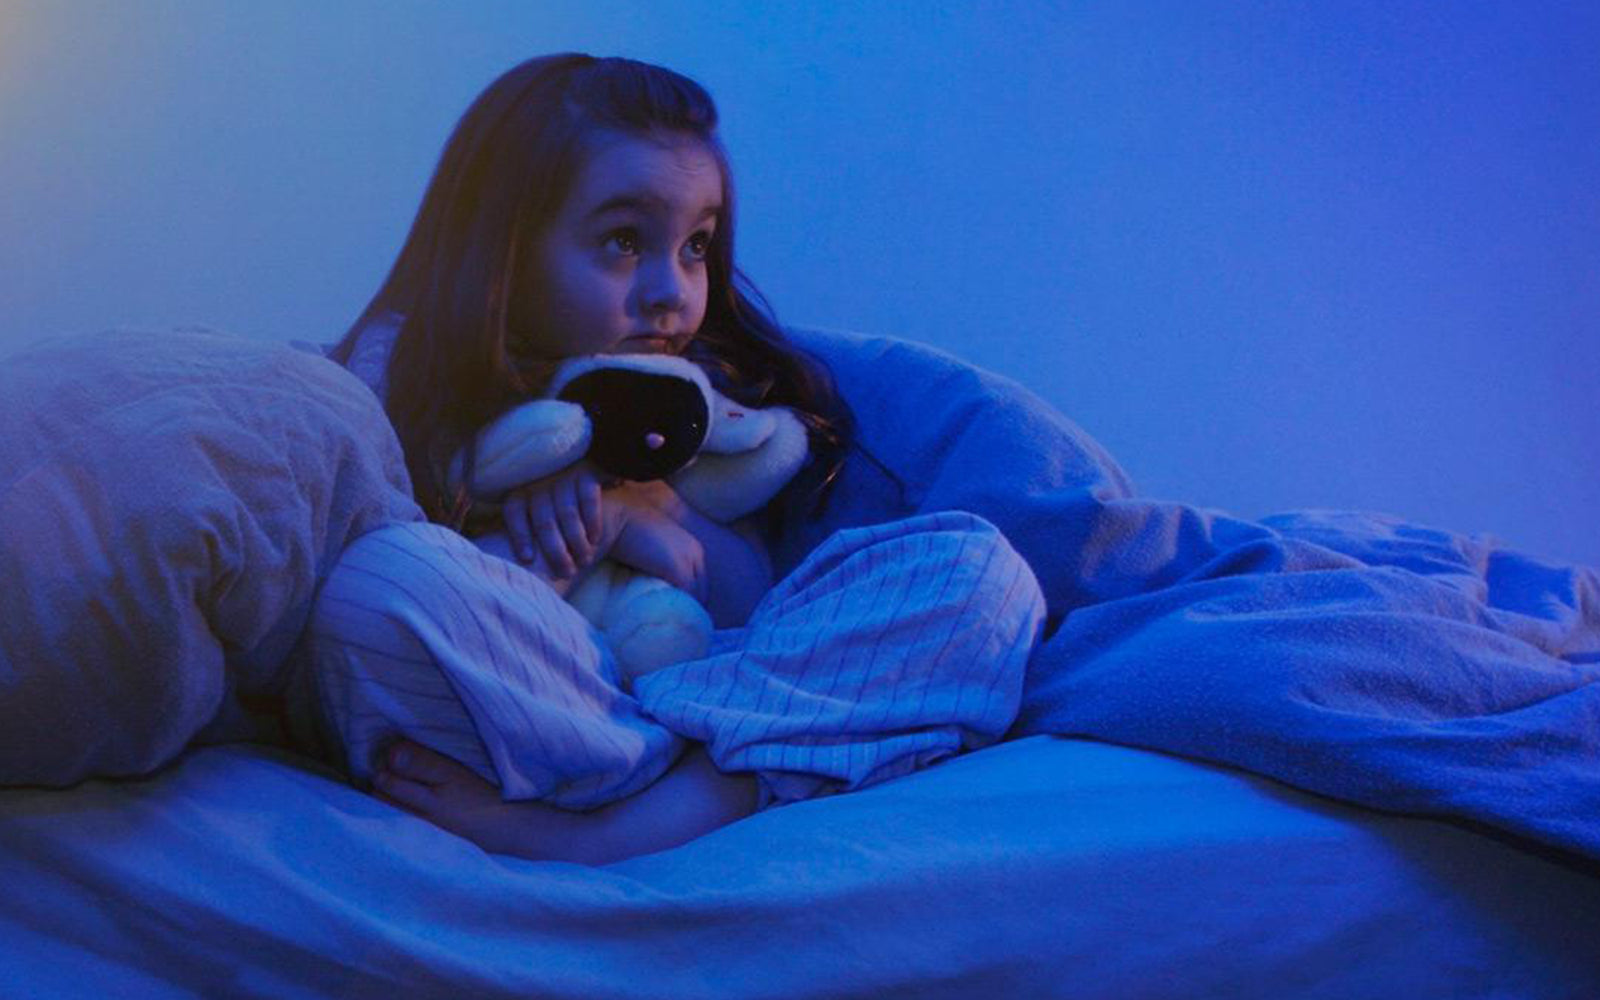 5 Hacks for Children Who Are Scared of the Dark